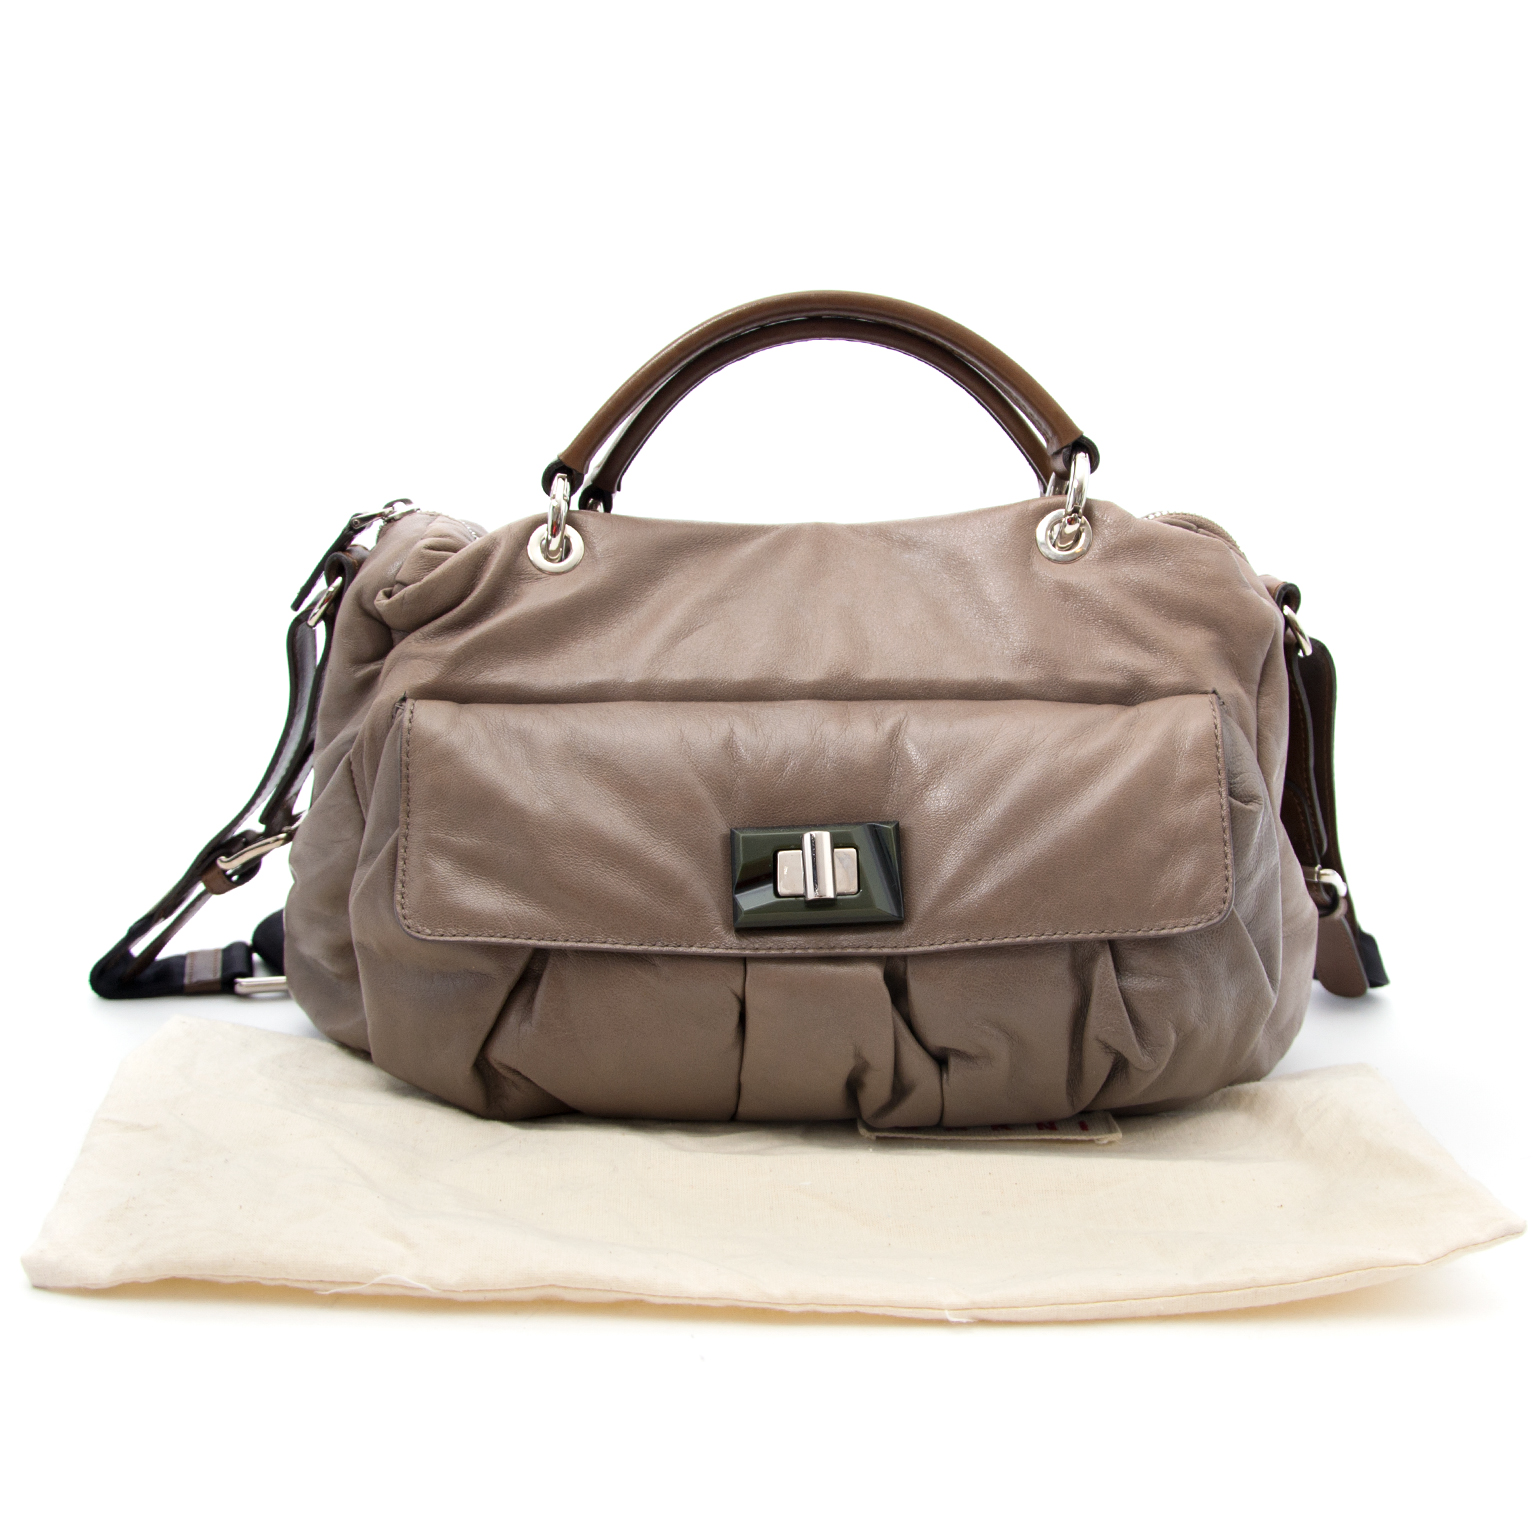 Timeless luxury for the best price at Labellov secondhand designer bags in Antwerp